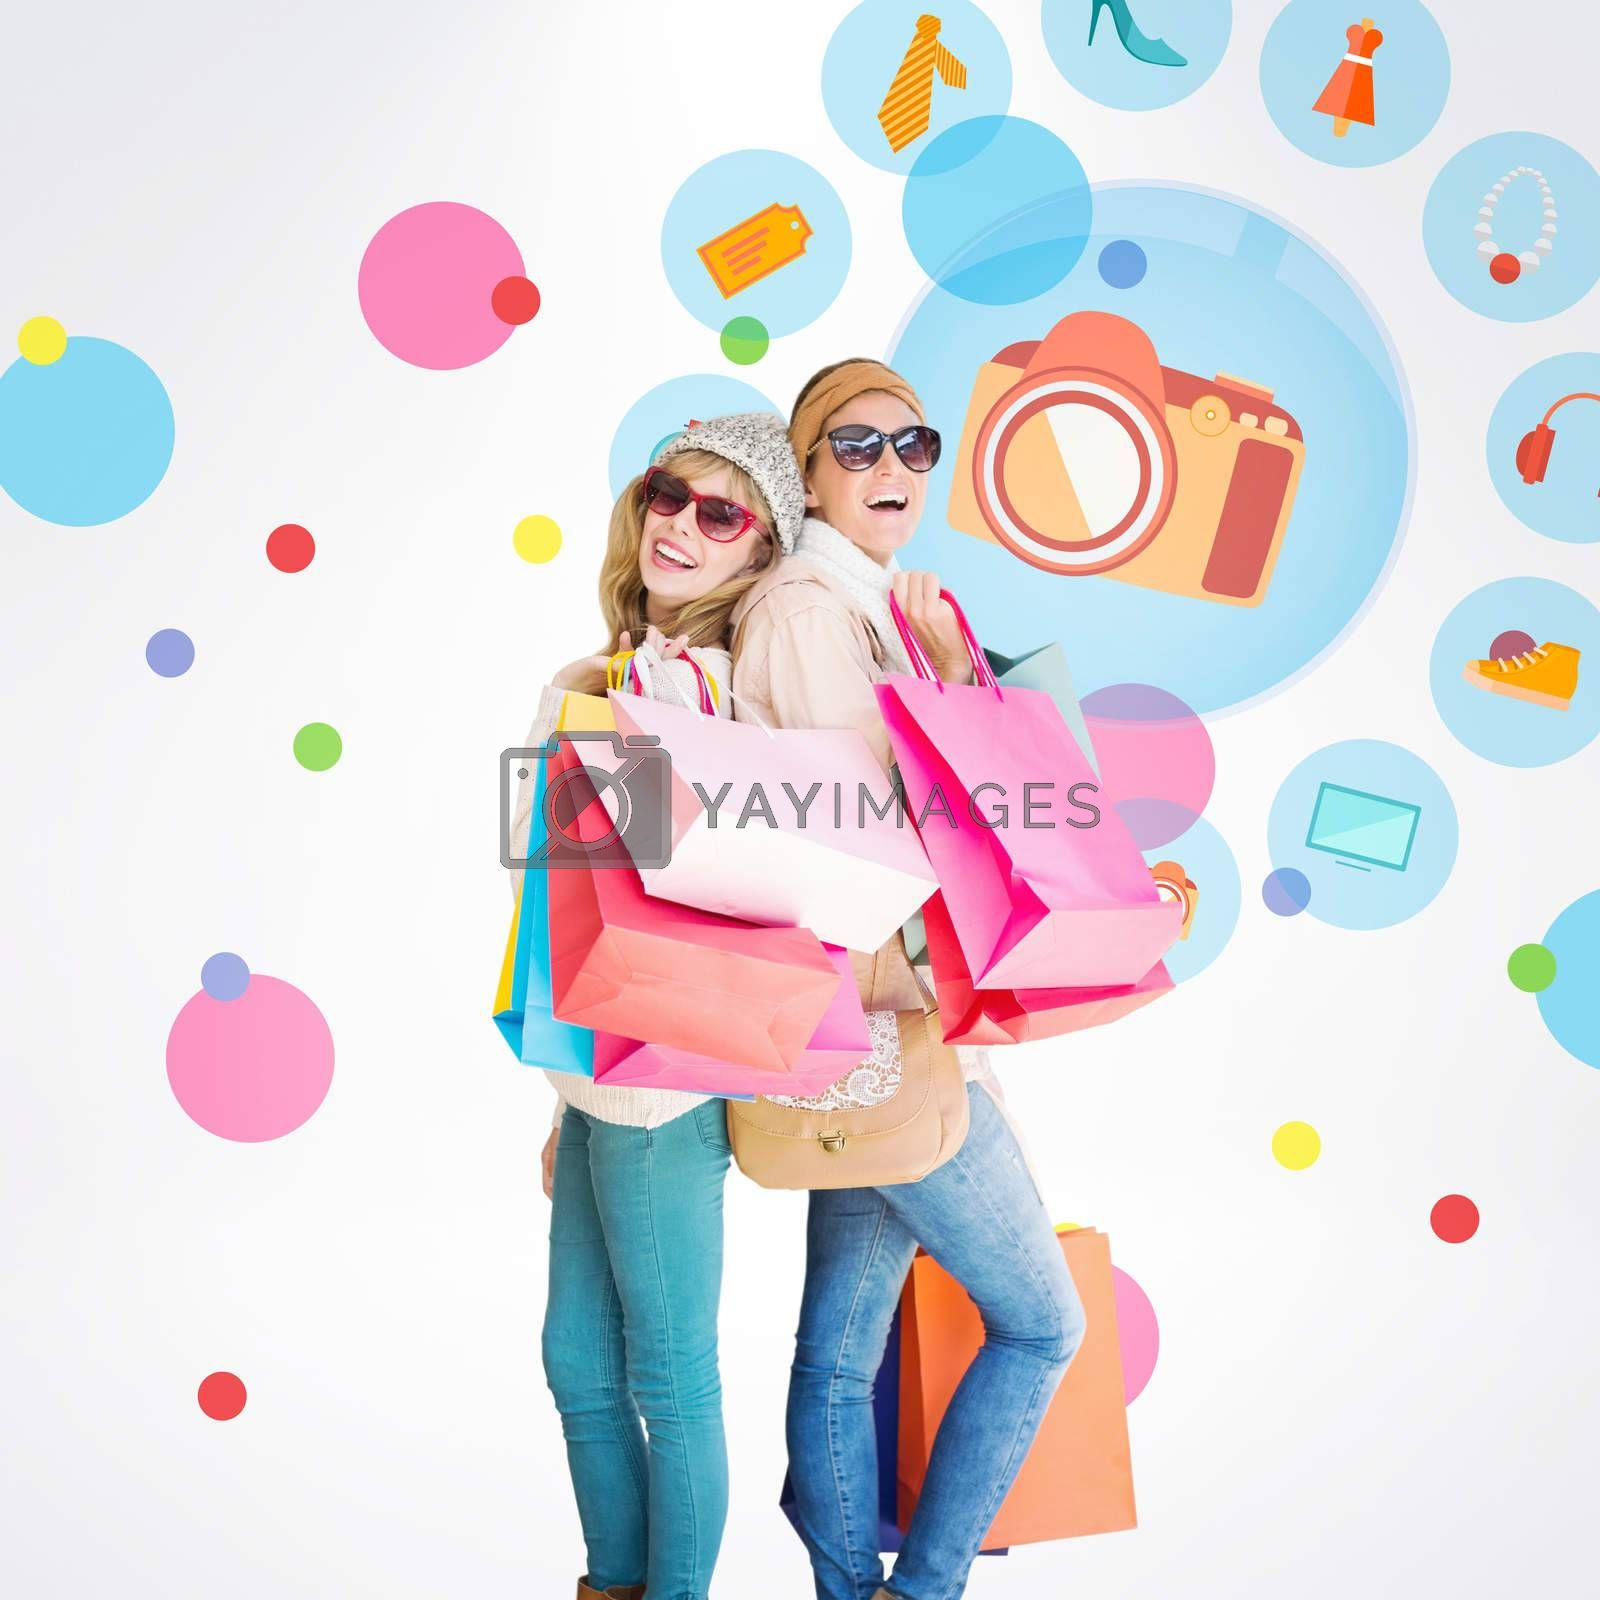 Beautiful women holding shopping bags looking at camera  against dot pattern